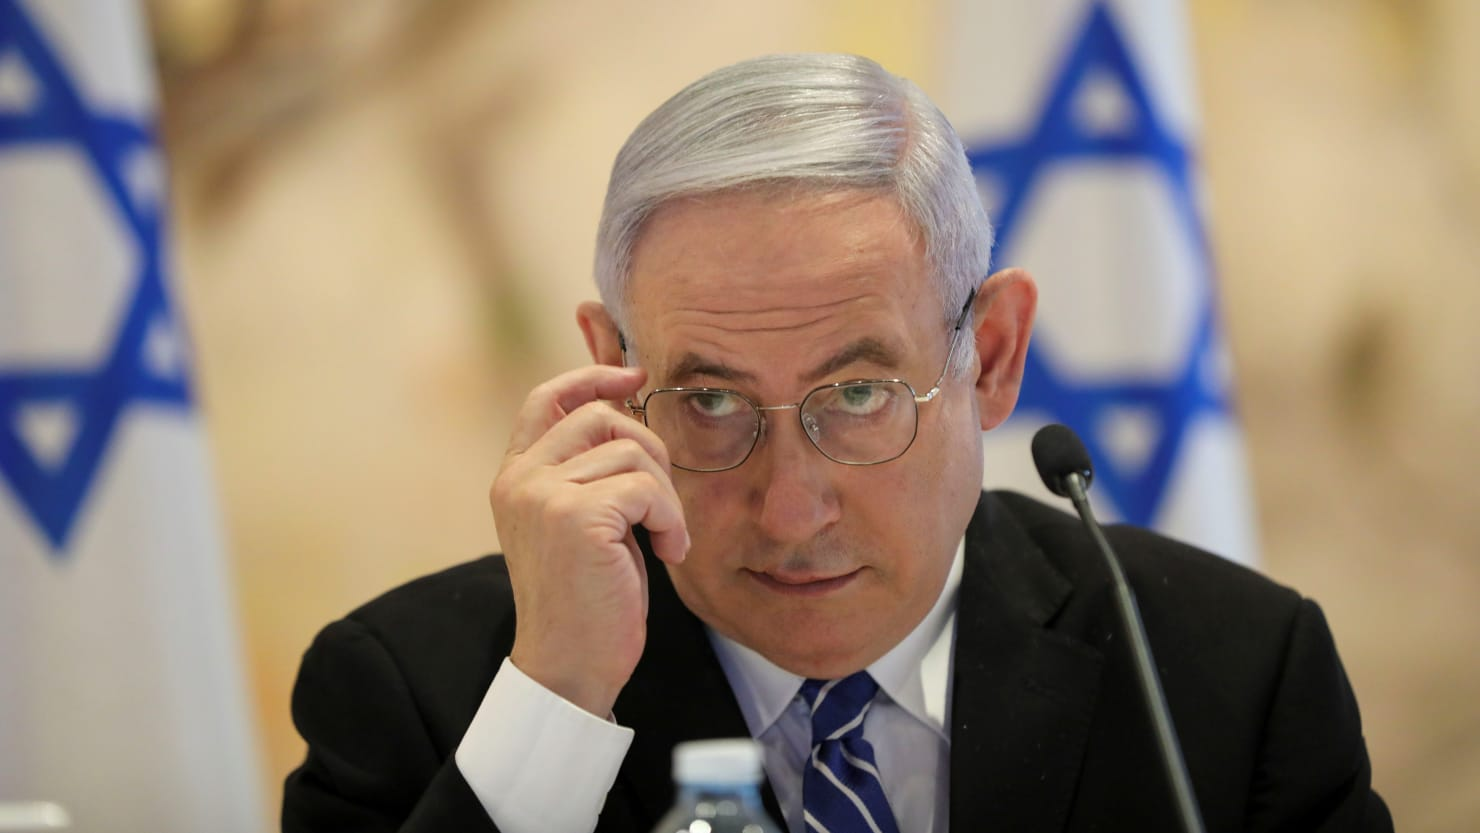 Benjamin Netanyahu Corruption Trial Opens in Israel